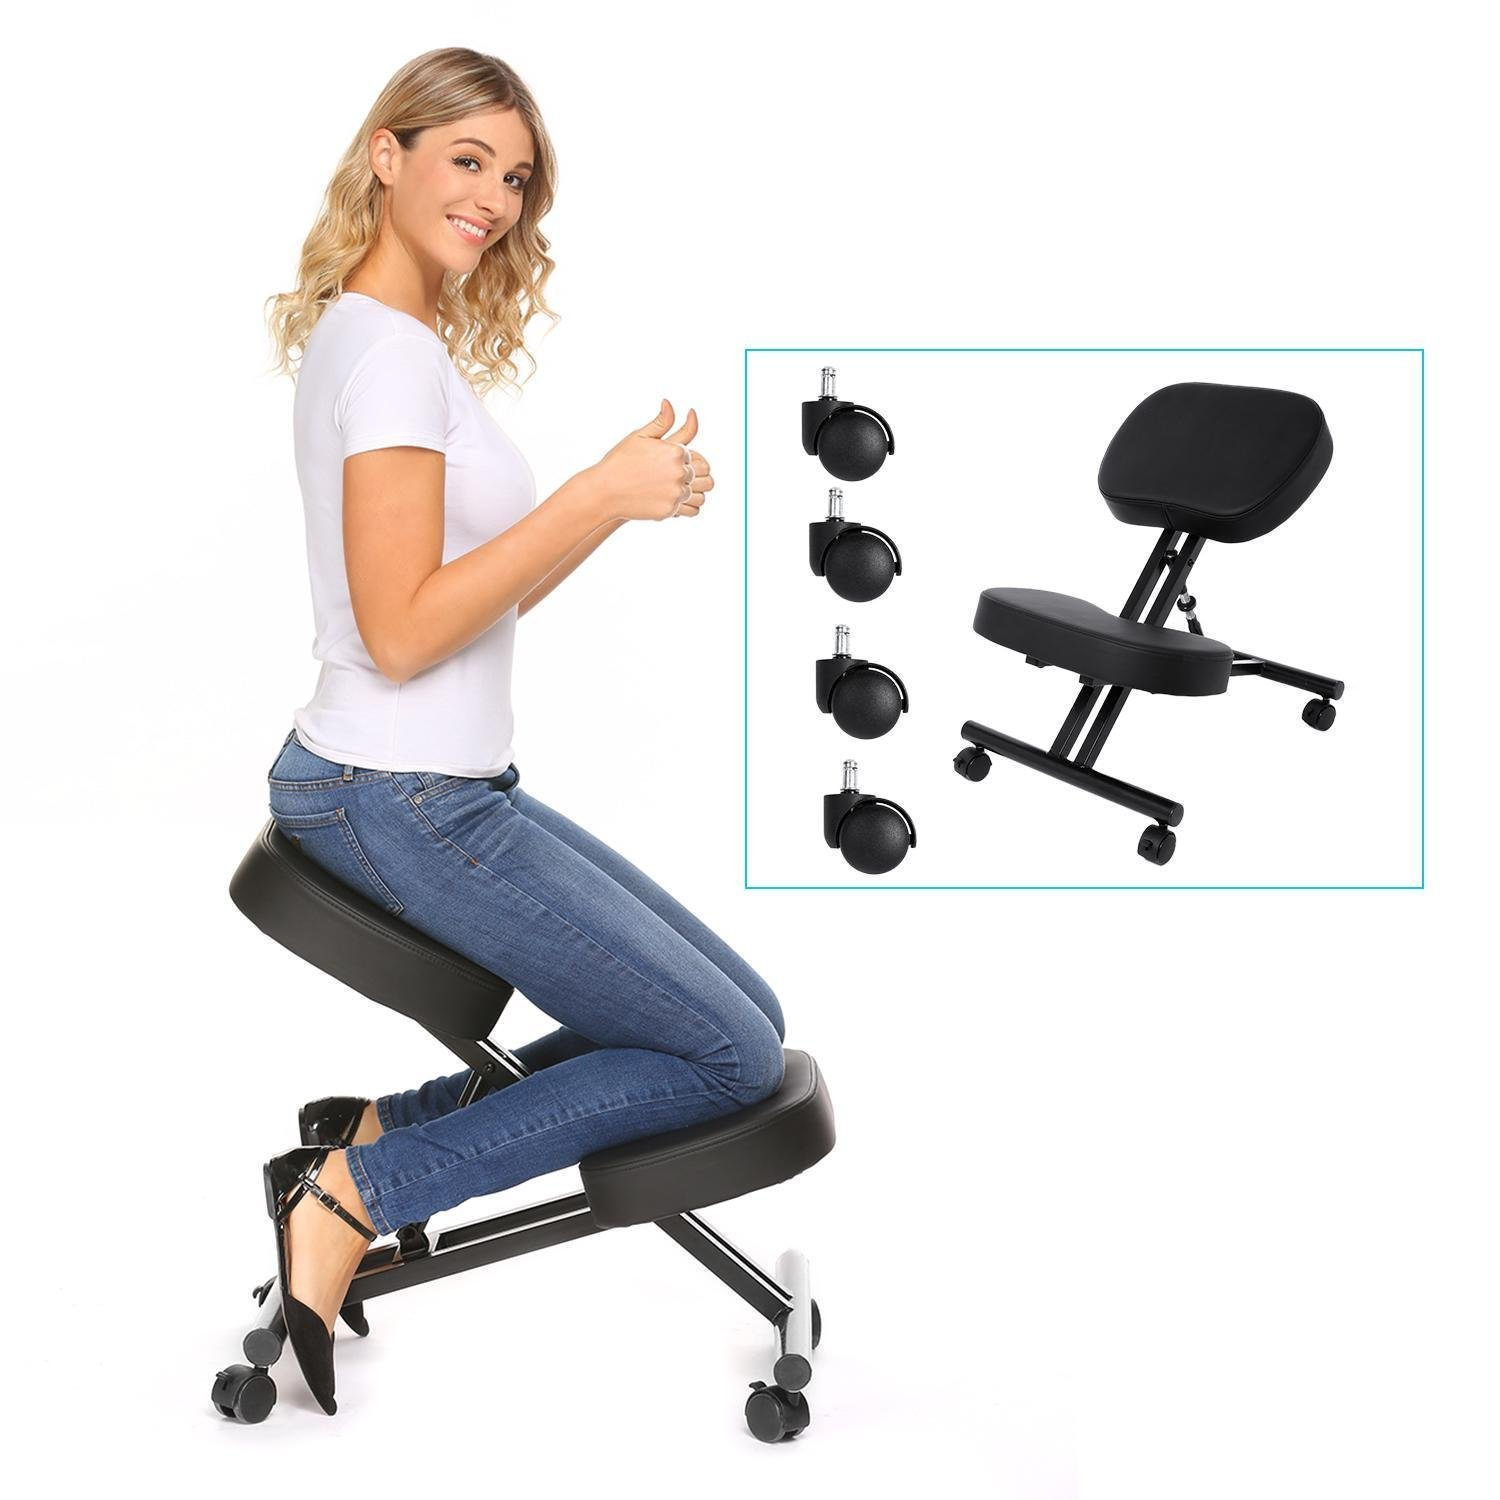 Phenomenal Cheap Desk Chair Kneeling Find Desk Chair Kneeling Deals On Pabps2019 Chair Design Images Pabps2019Com